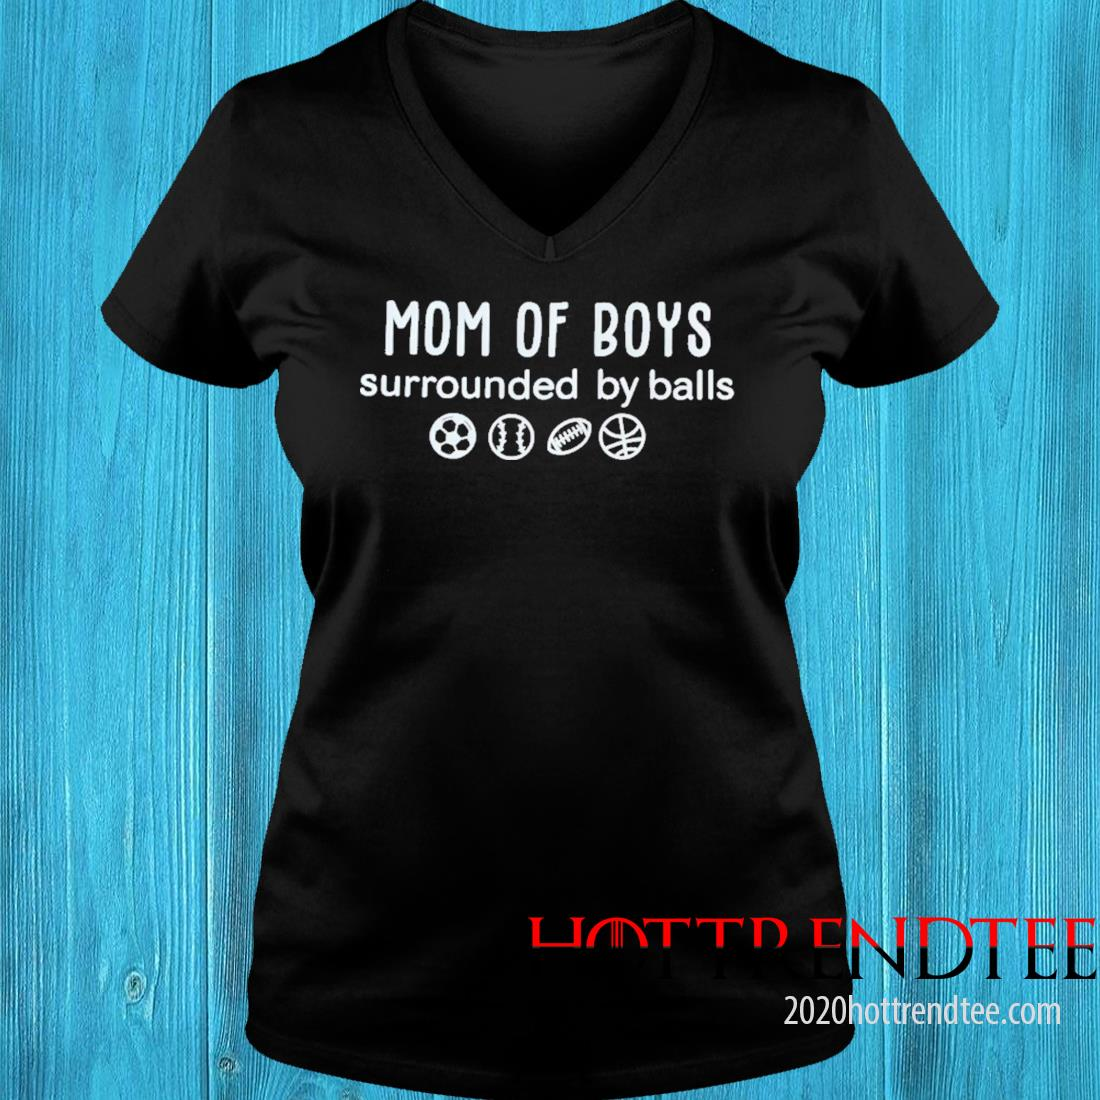 Mom Of boys Surrounded By Balls Shirt v-neck tee